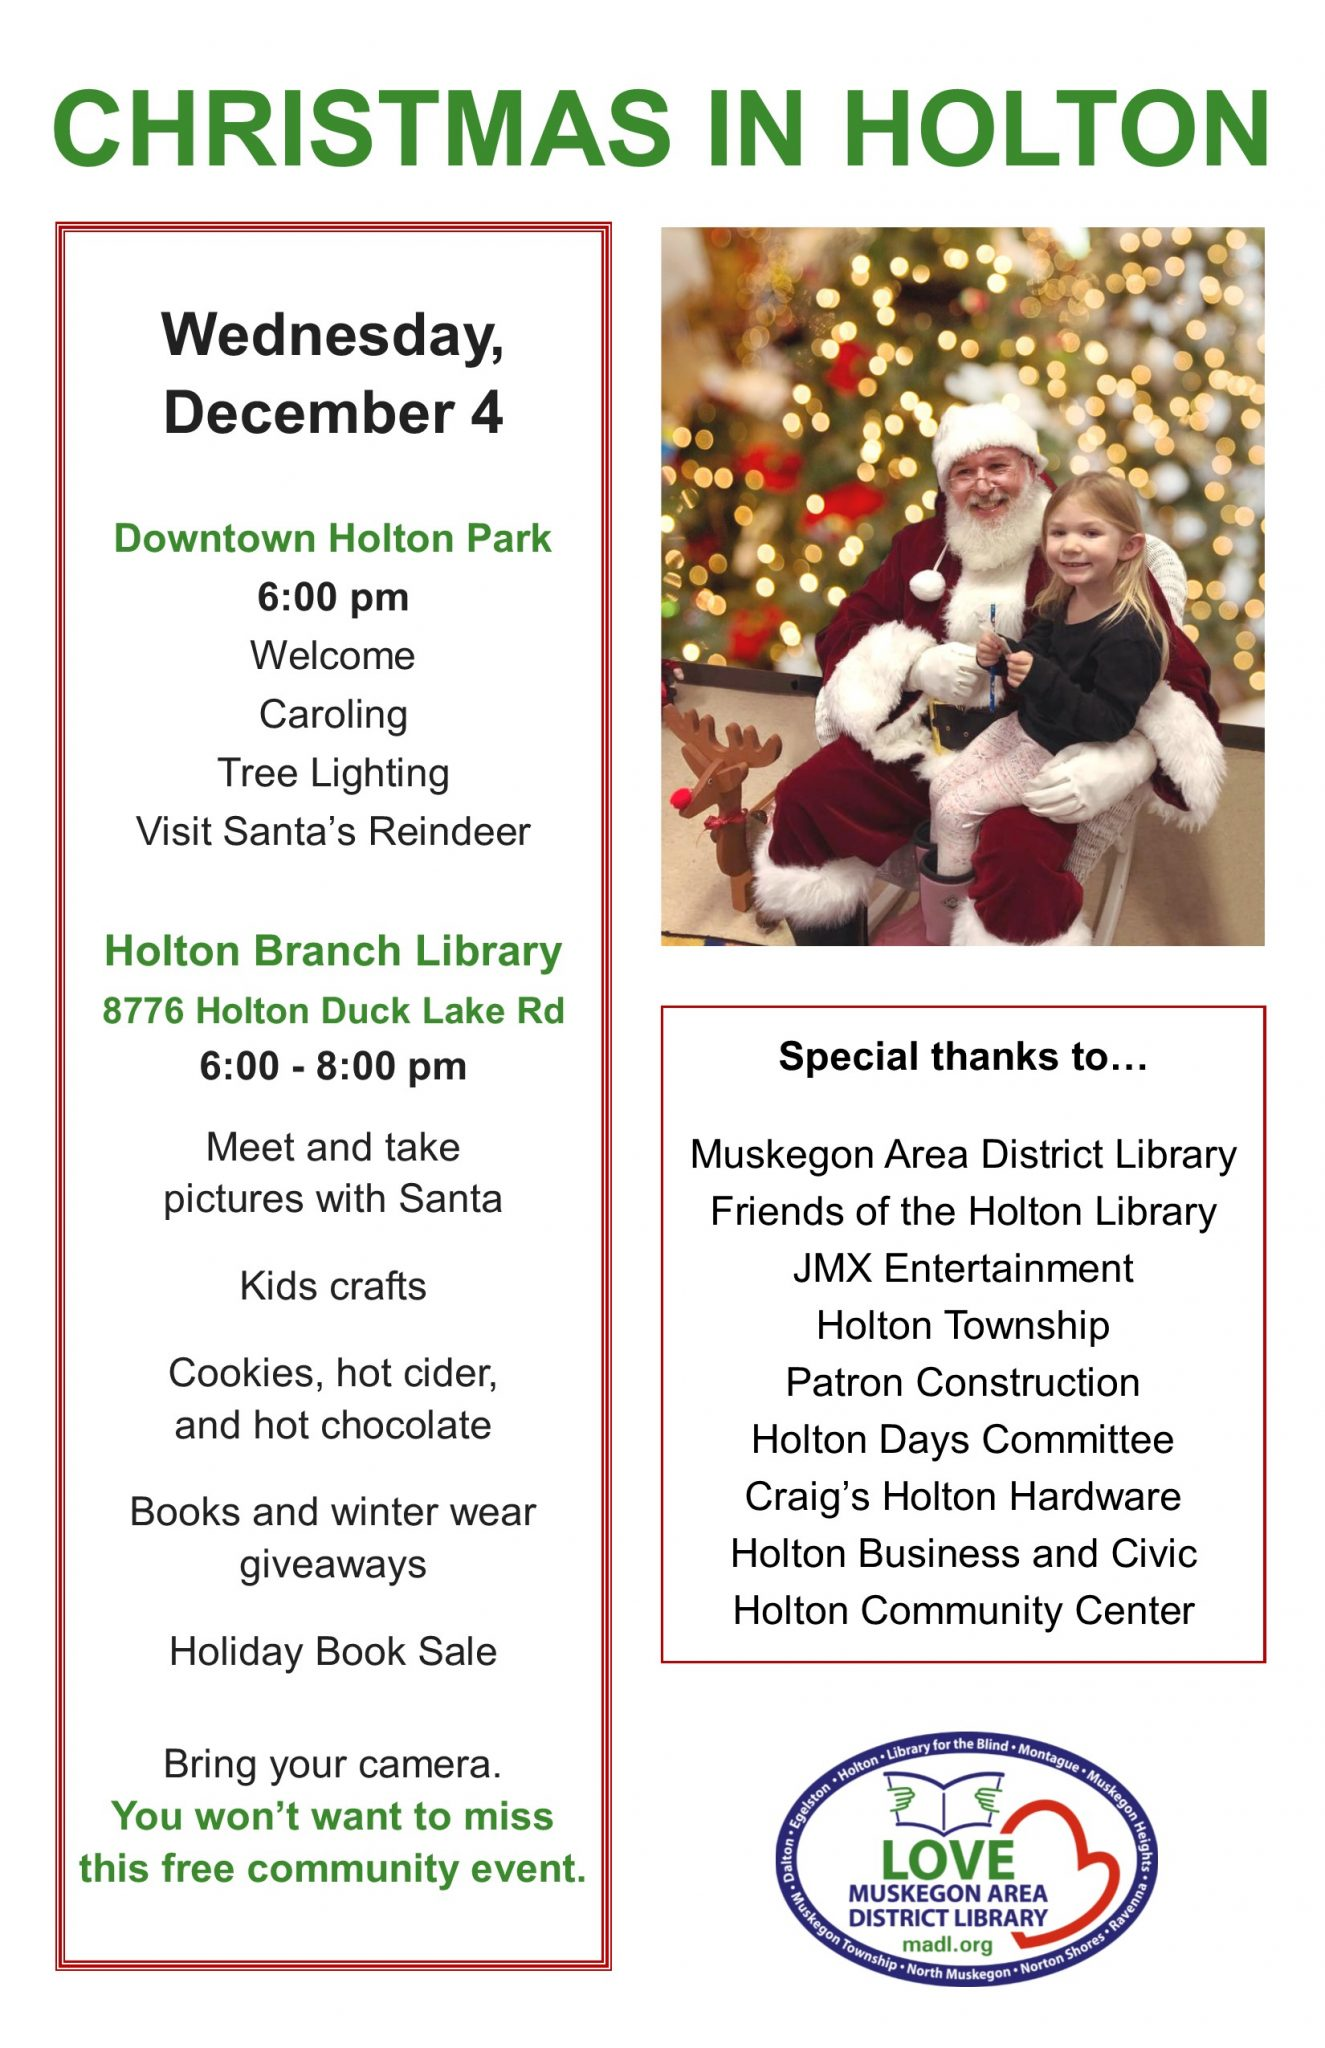 Christmas Holiday Events In Muskegon Mi 2020 Christmas in Holton   Visit Muskegon